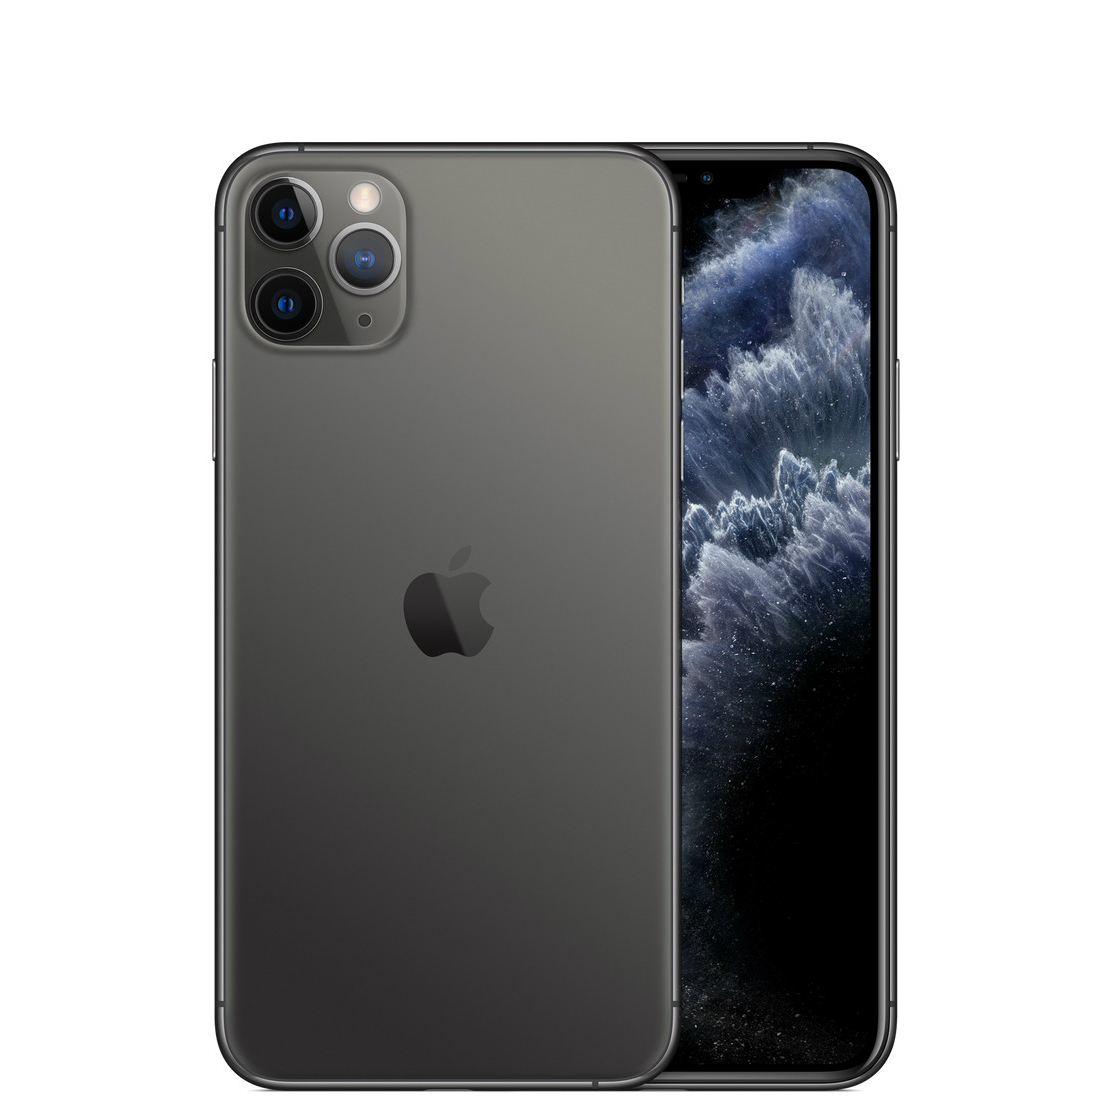 Image of Apple iPhone 11 Pro Max 256GB A2220 Dual Sim with Tempered Glass Screen Protector - Space Gray